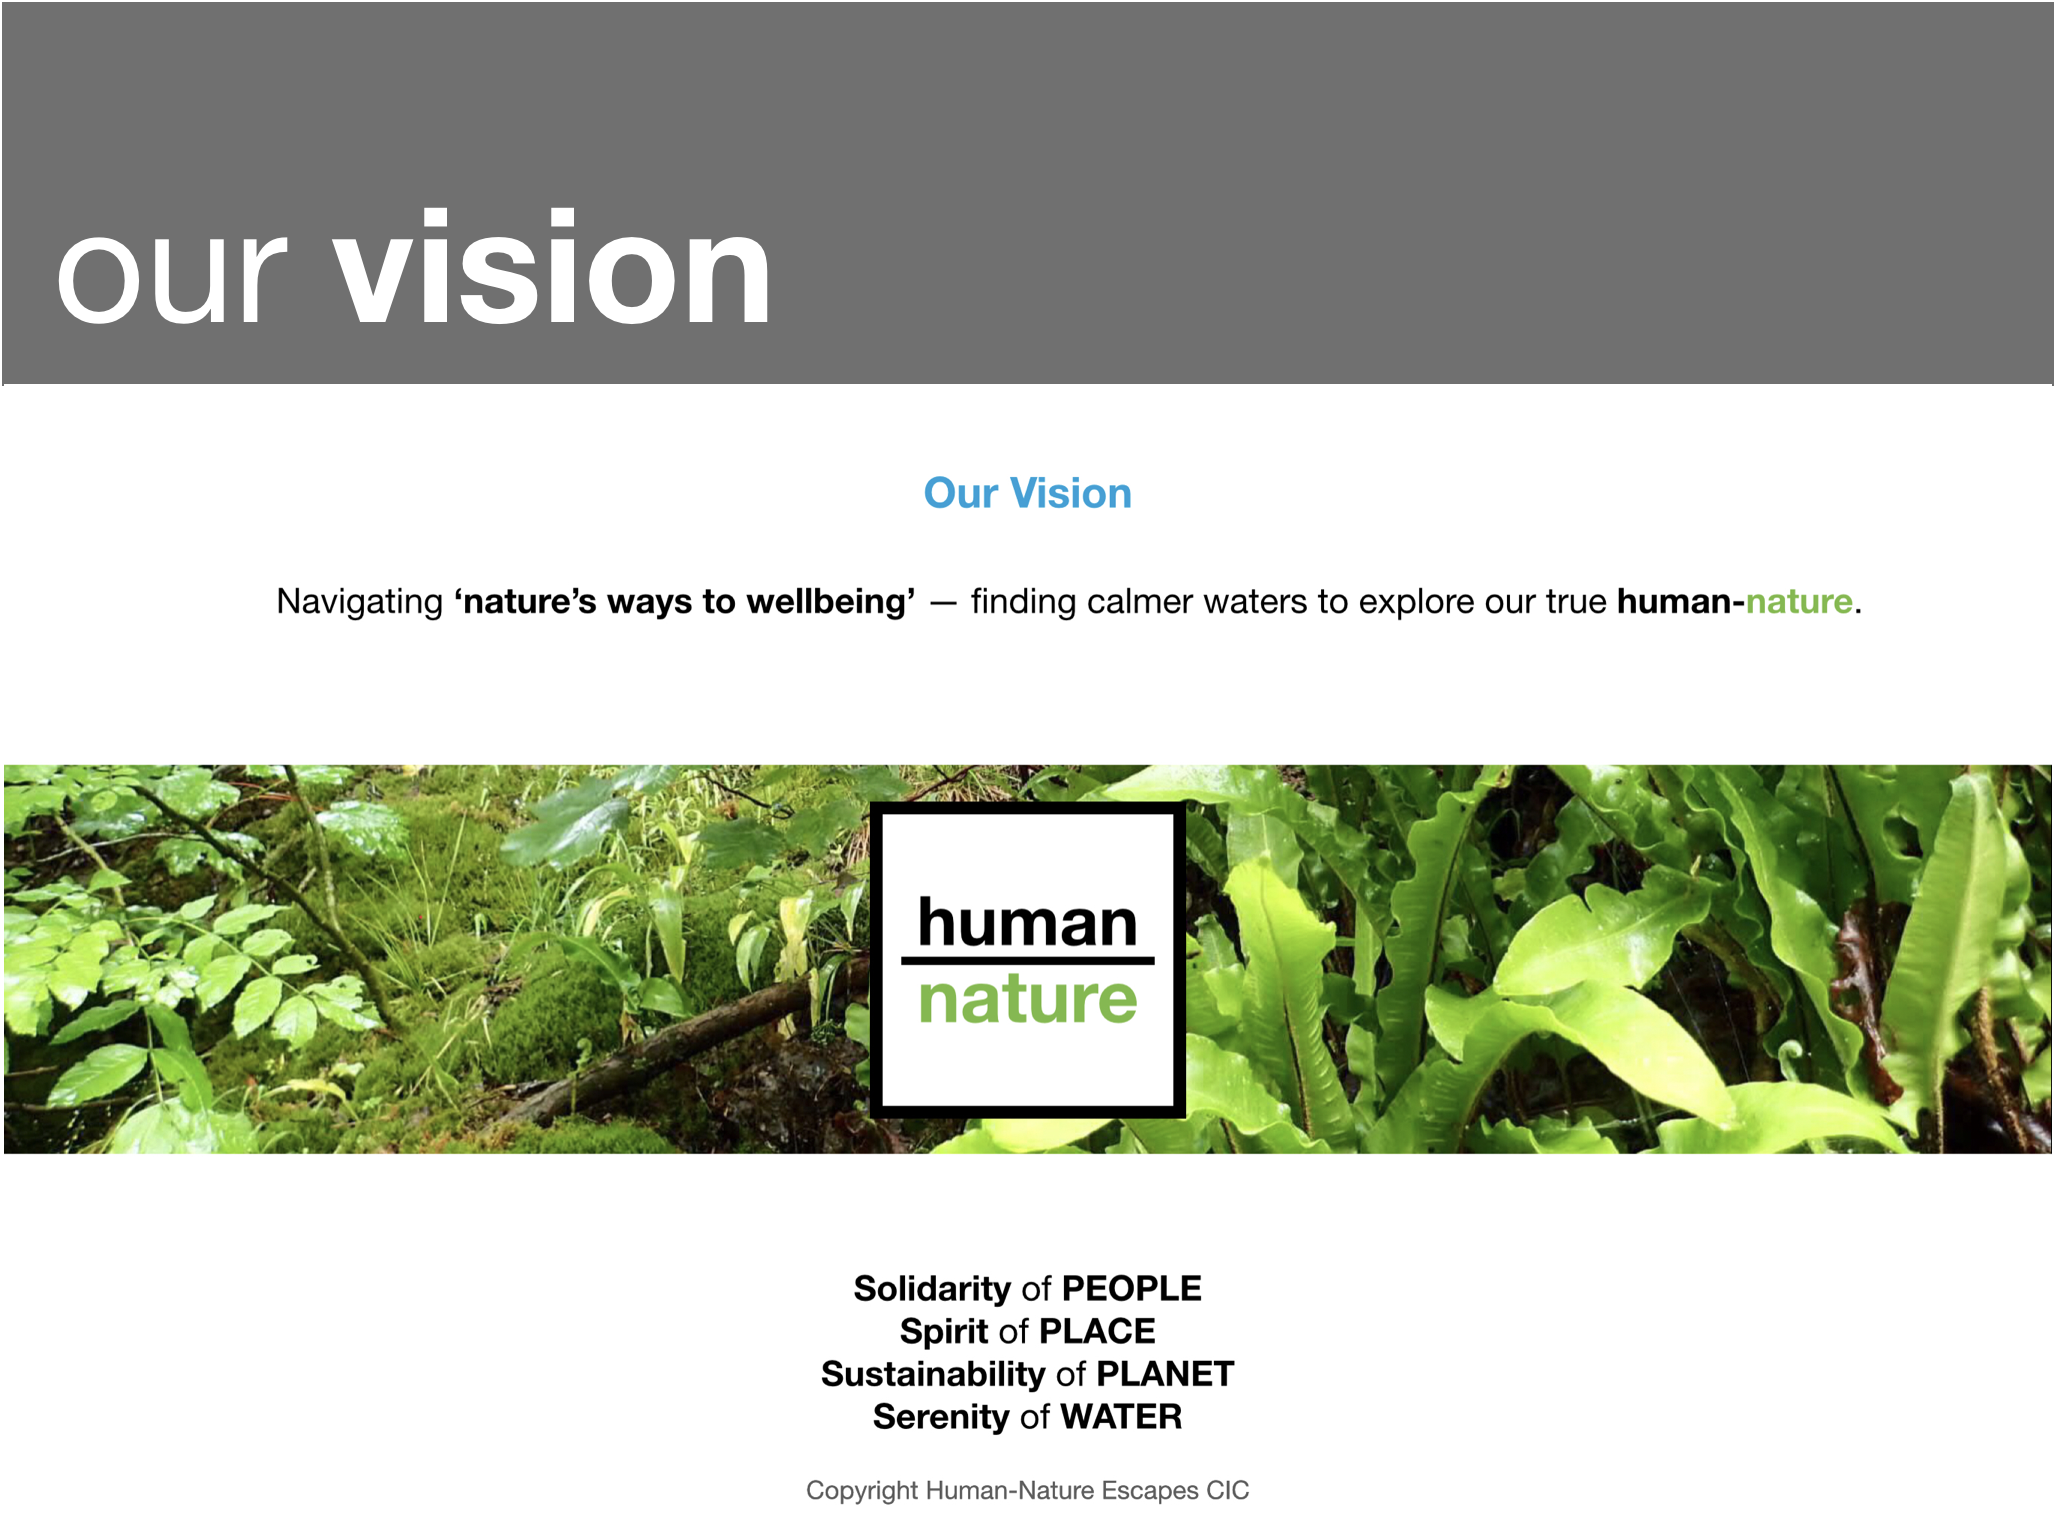 Human-Nature - Our Vision